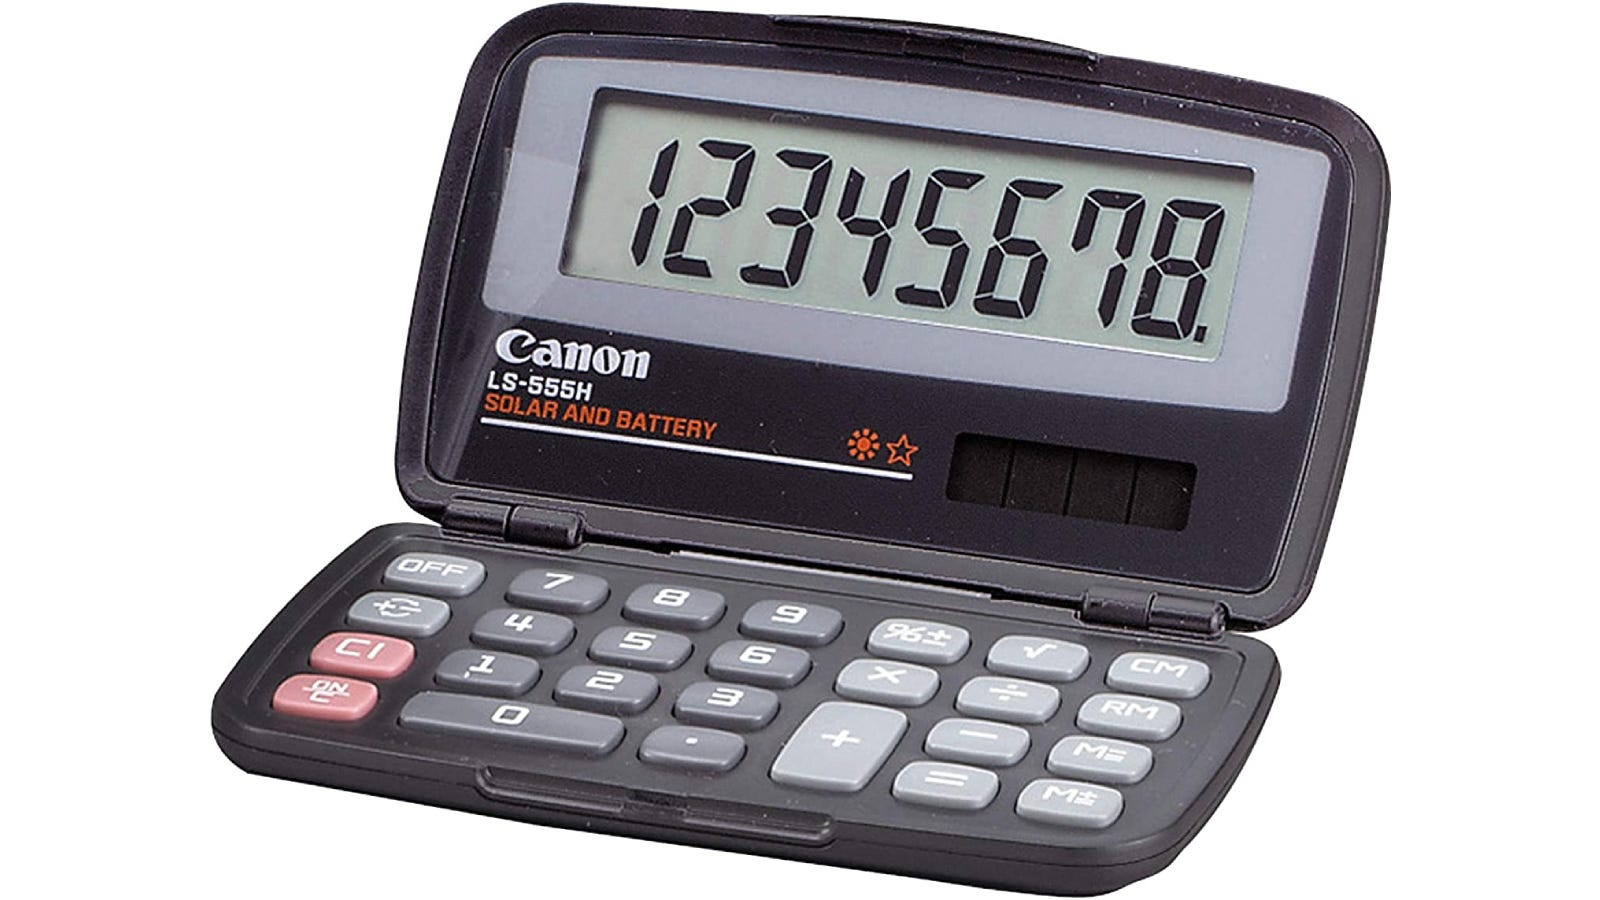 A foldable calculator with a one-line display.